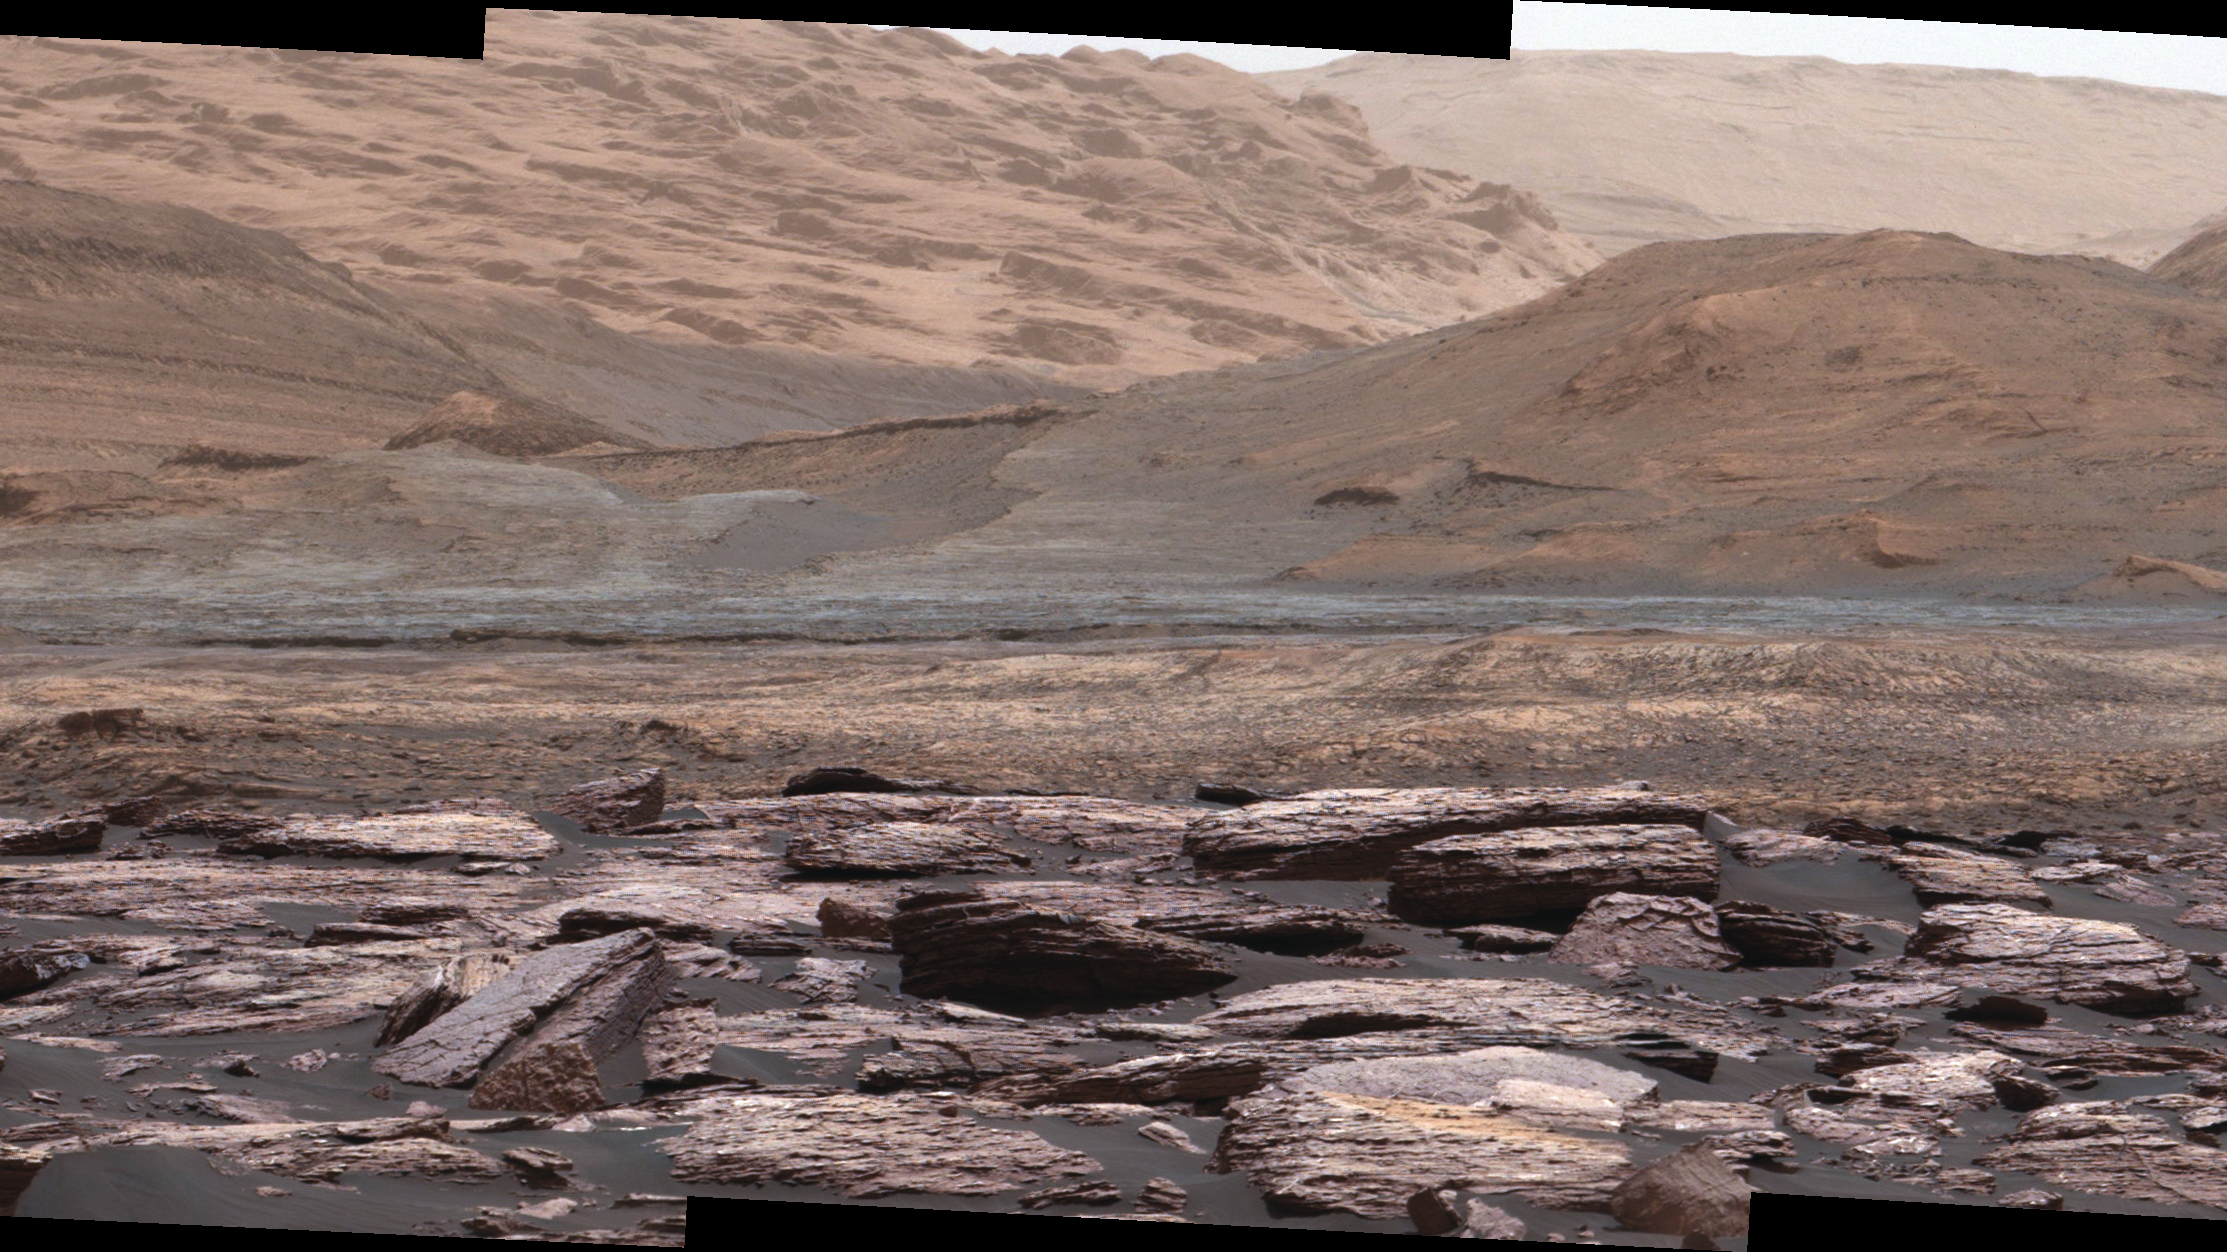 curiosity rover color - photo #15